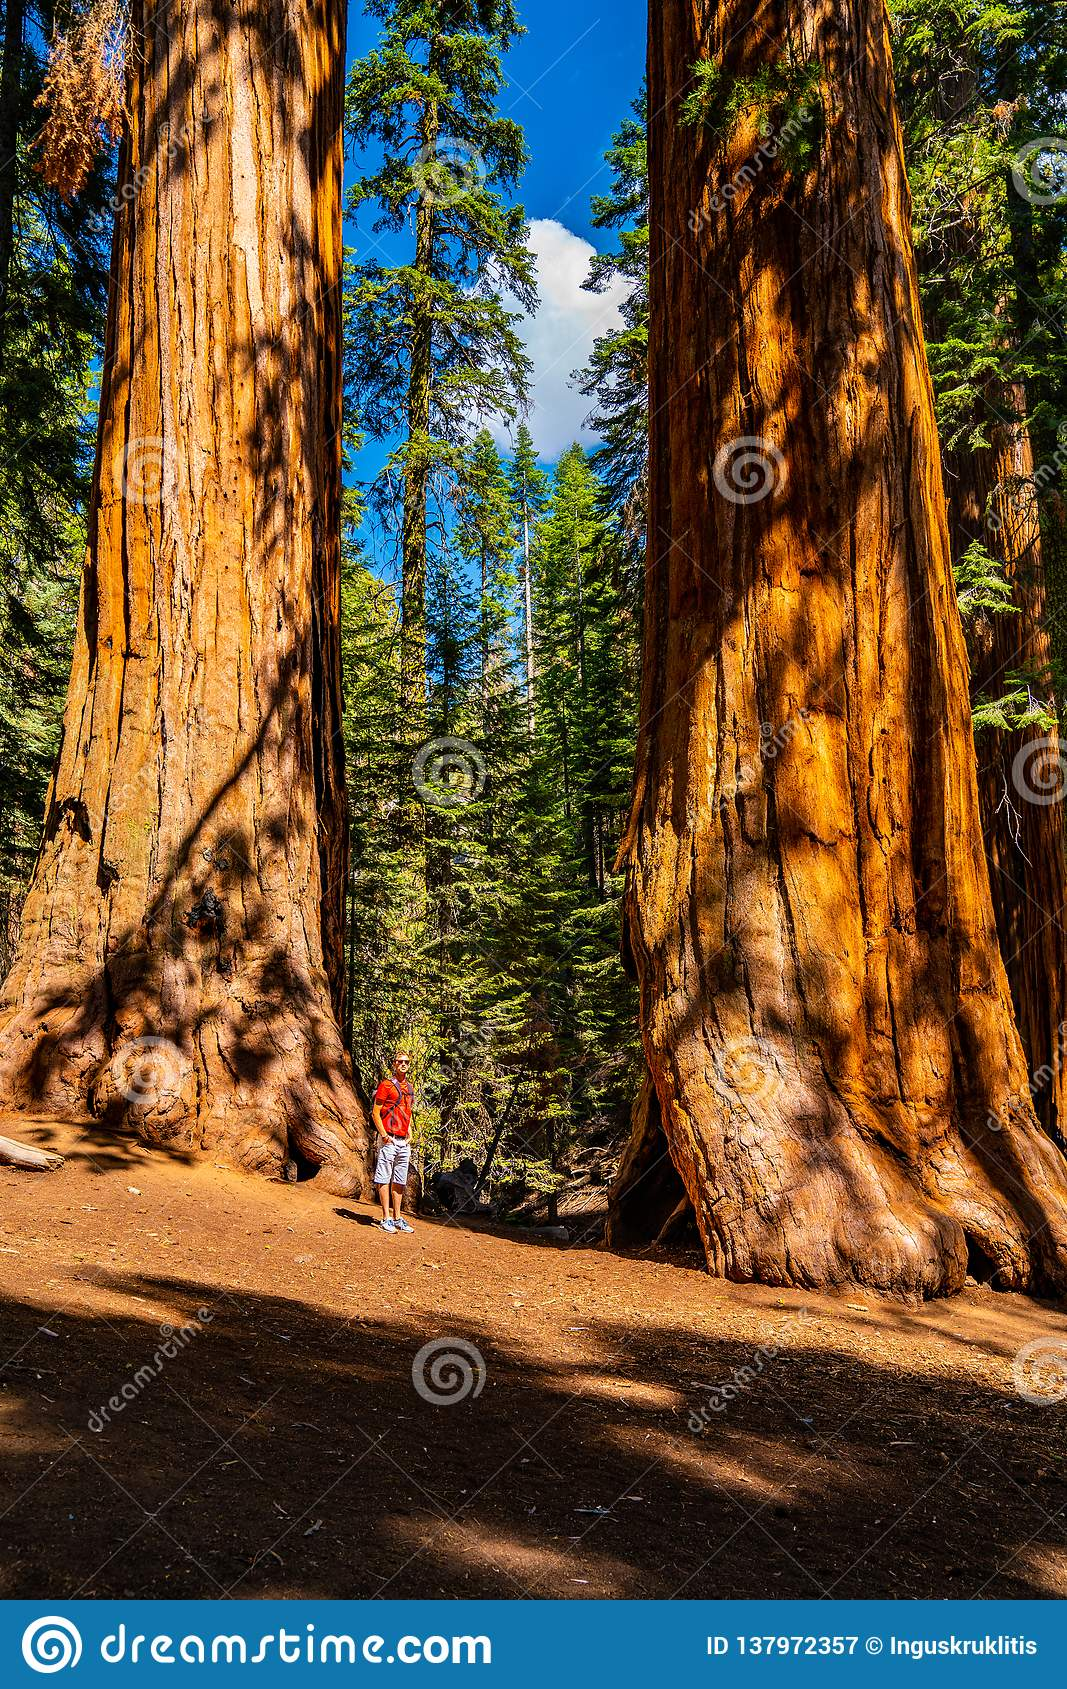 Young man standing by the huge sequoia tree in the Sequoia National Park.